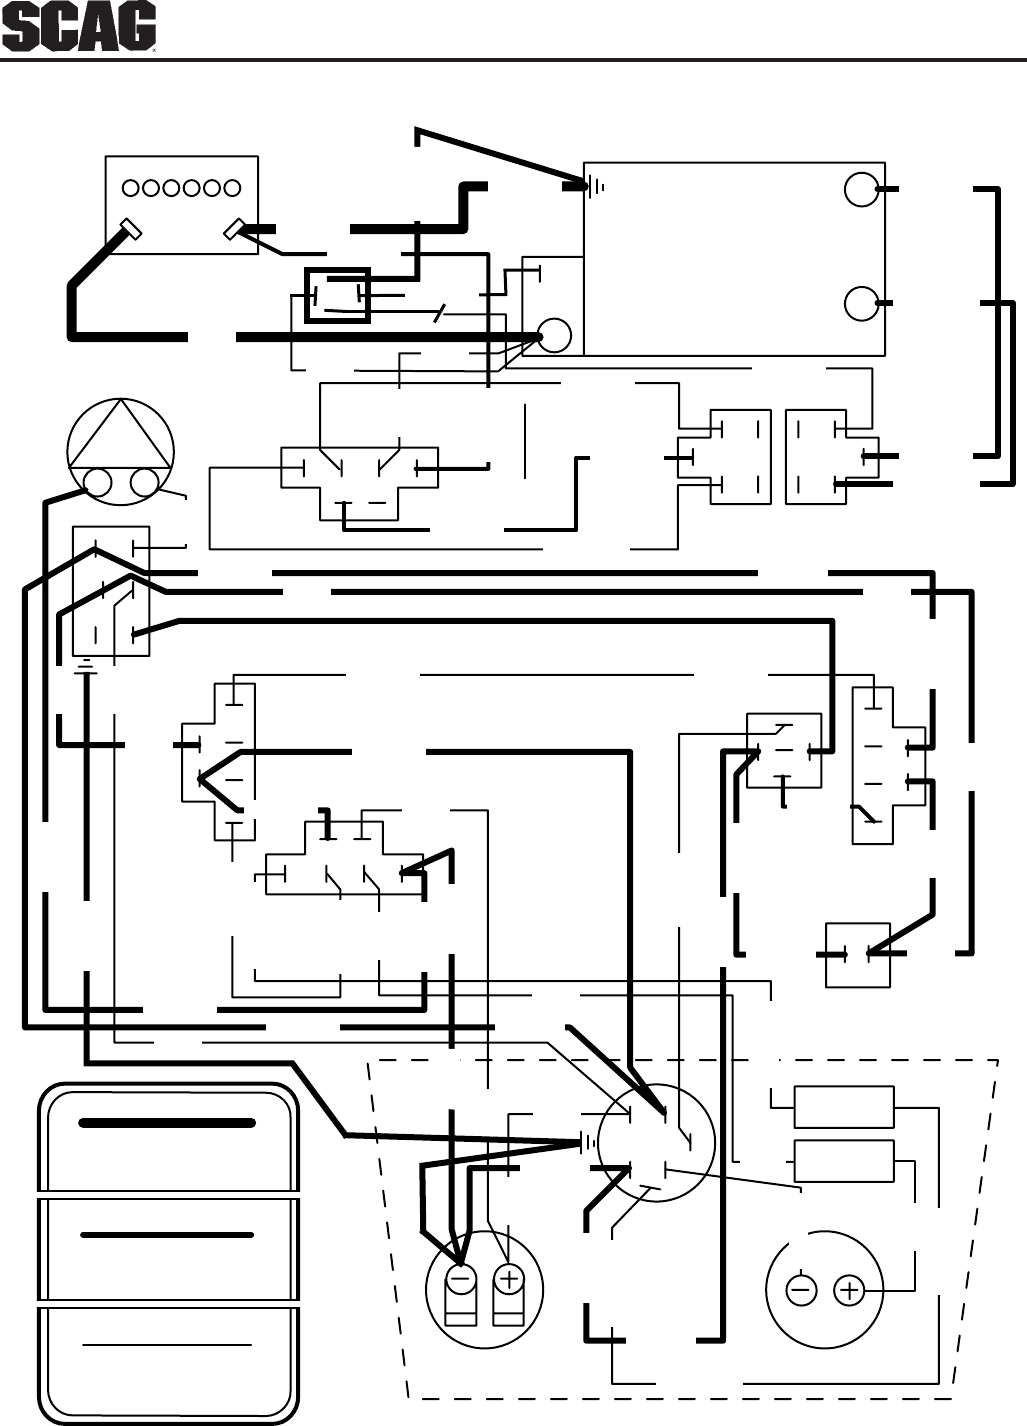 b9ce615b 020e 4d78 97db 0a4906c05276 bg22 scag wiring diagram on scag images free download wiring diagrams  at honlapkeszites.co